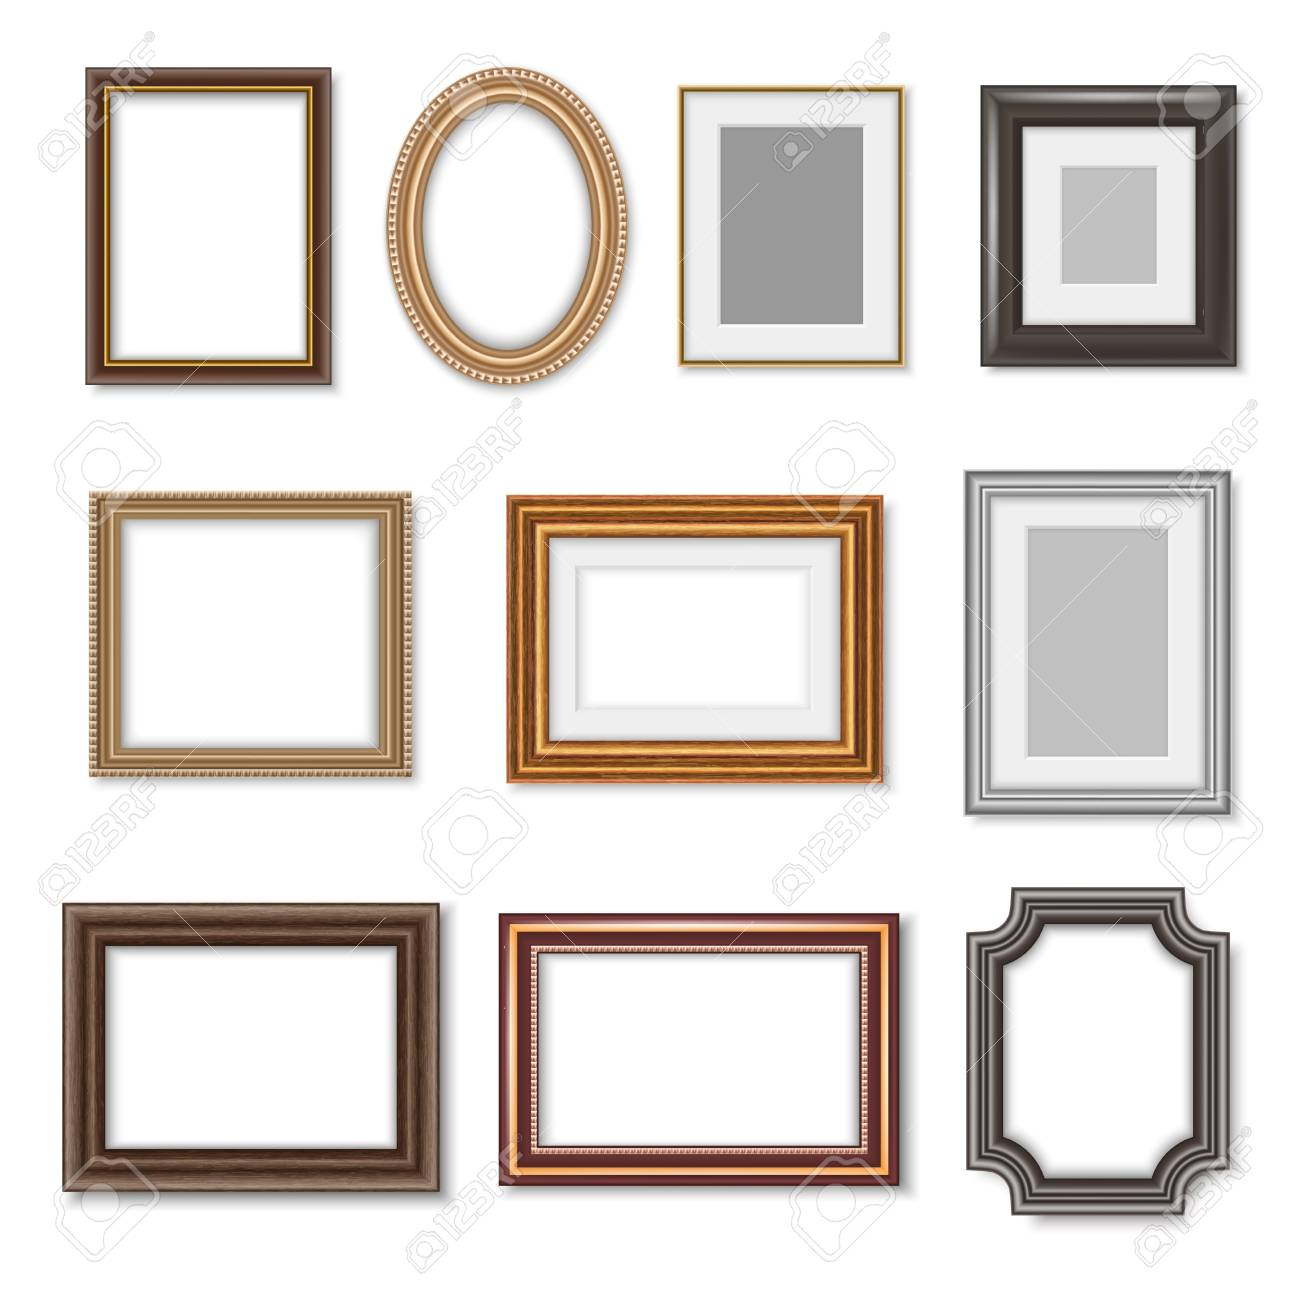 Photo frames and ornate picture borders isolated realistic set. Vector blank rectangular vintage wooden photo frame with ornate edges and luxury oval golden mirror borders - 118668617